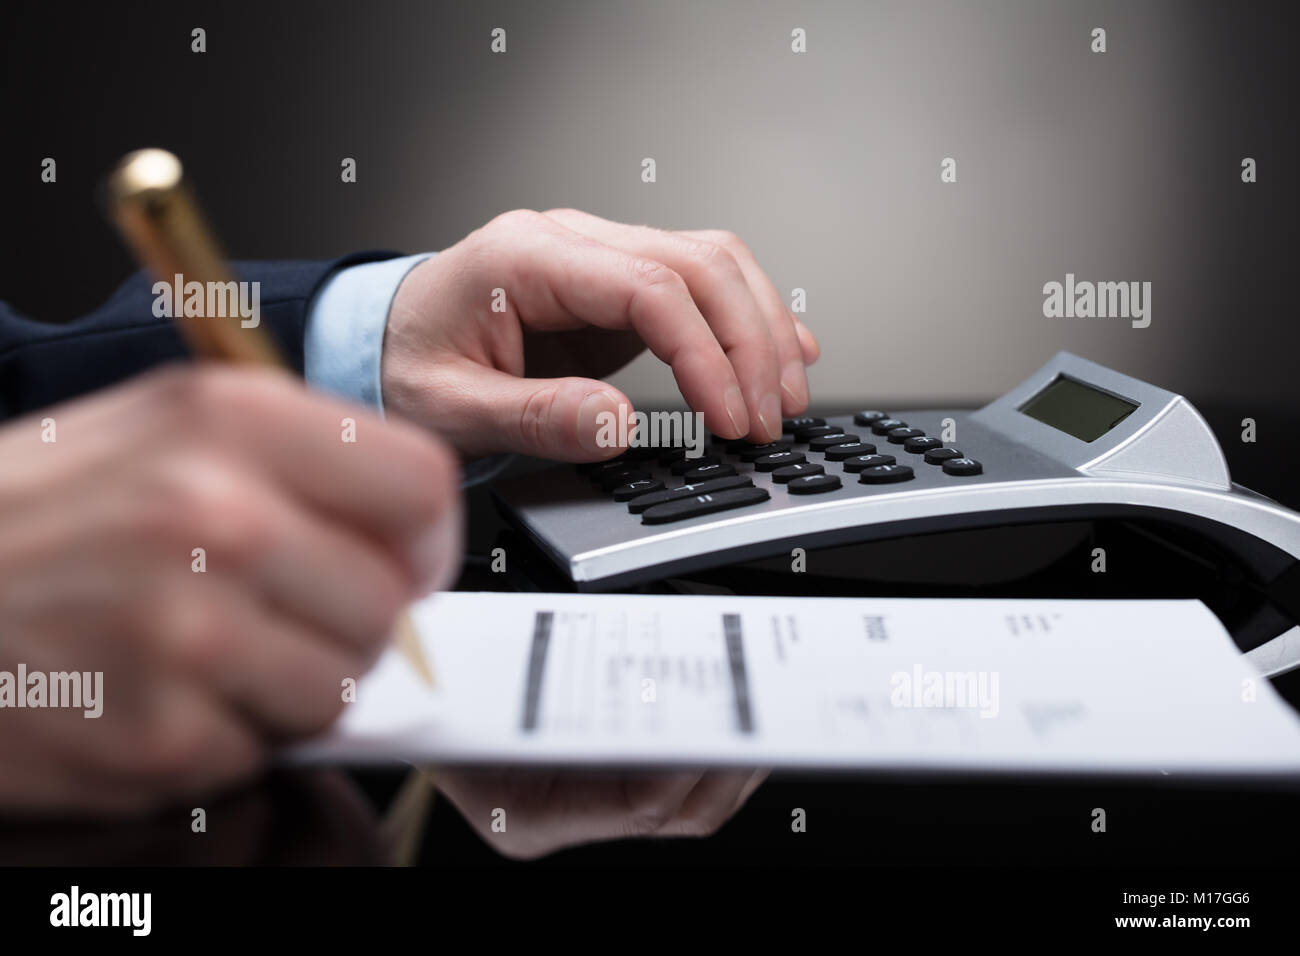 Businessperson Checking Invoice With Receipts On Desk - Stock Image